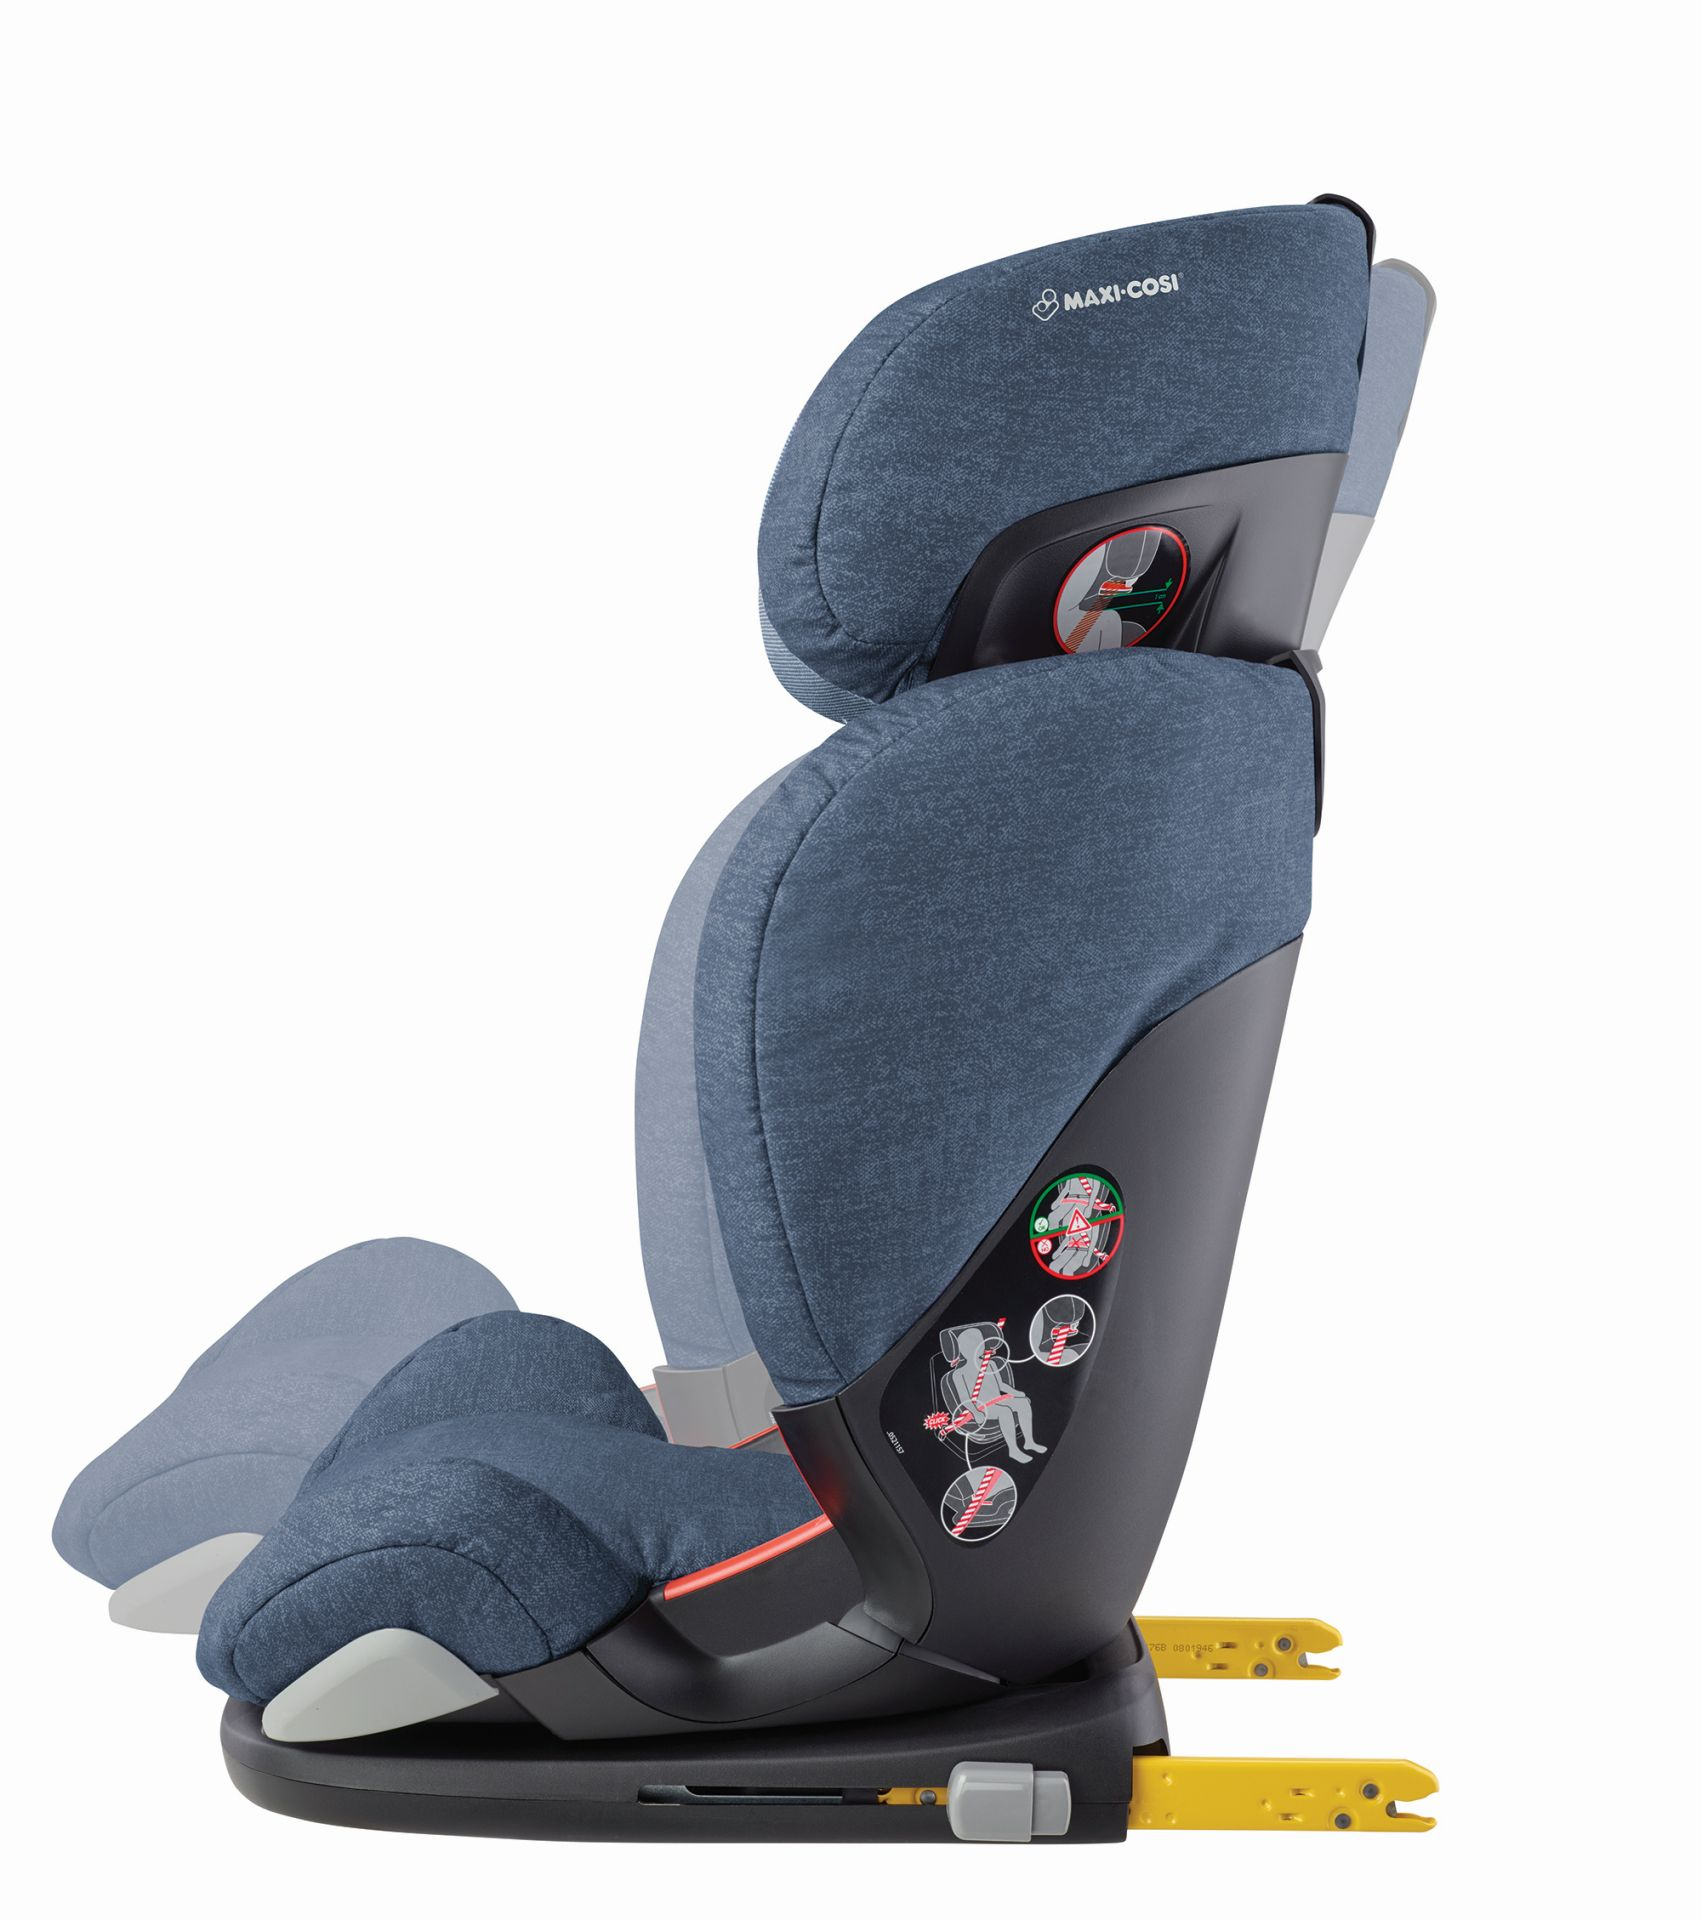 maxi cosi child car seat rodifix airprotect 2018 nomad. Black Bedroom Furniture Sets. Home Design Ideas